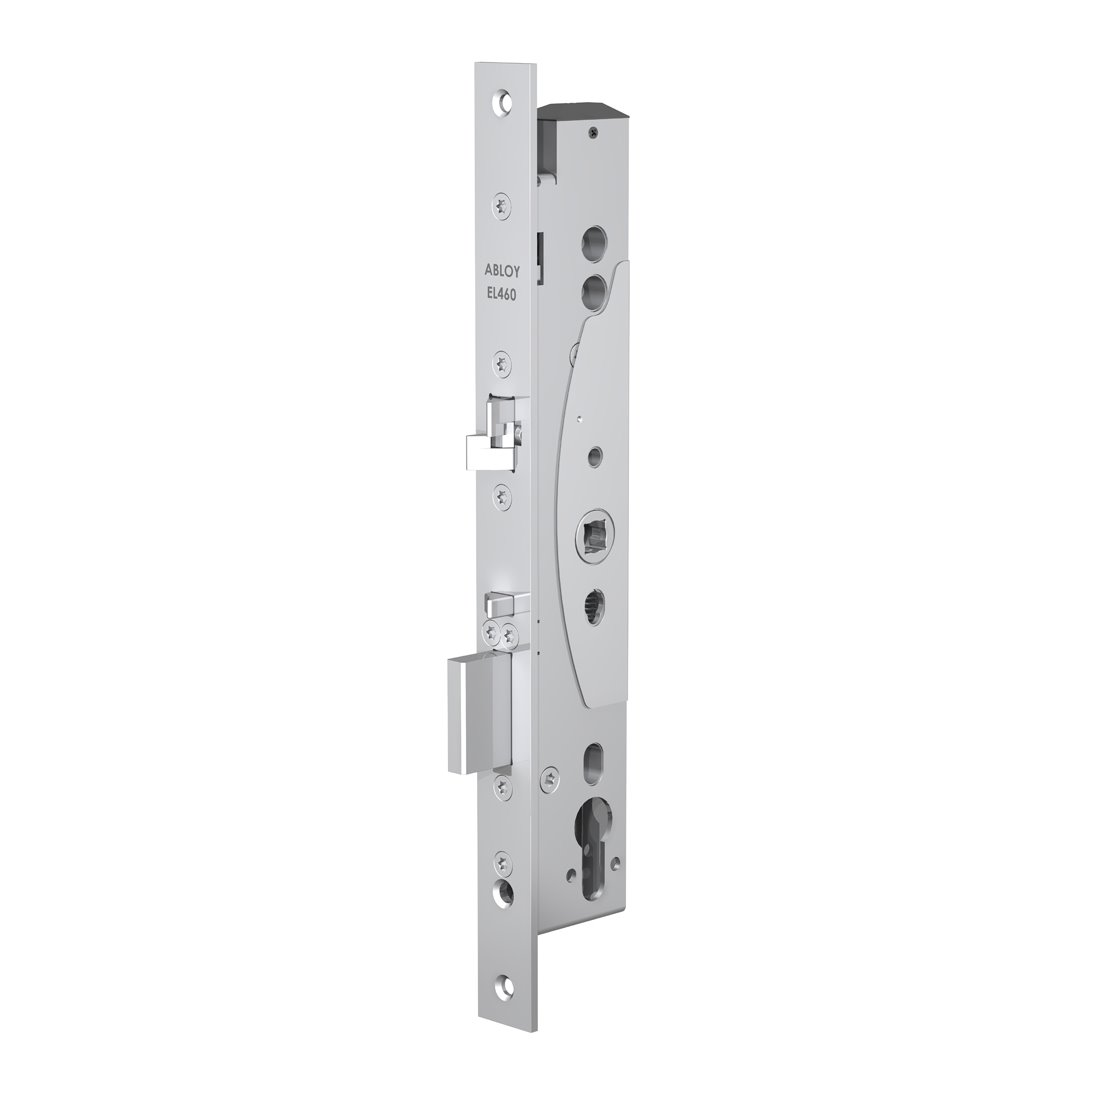 EL461 handle controlled lock case for narrow profile doors